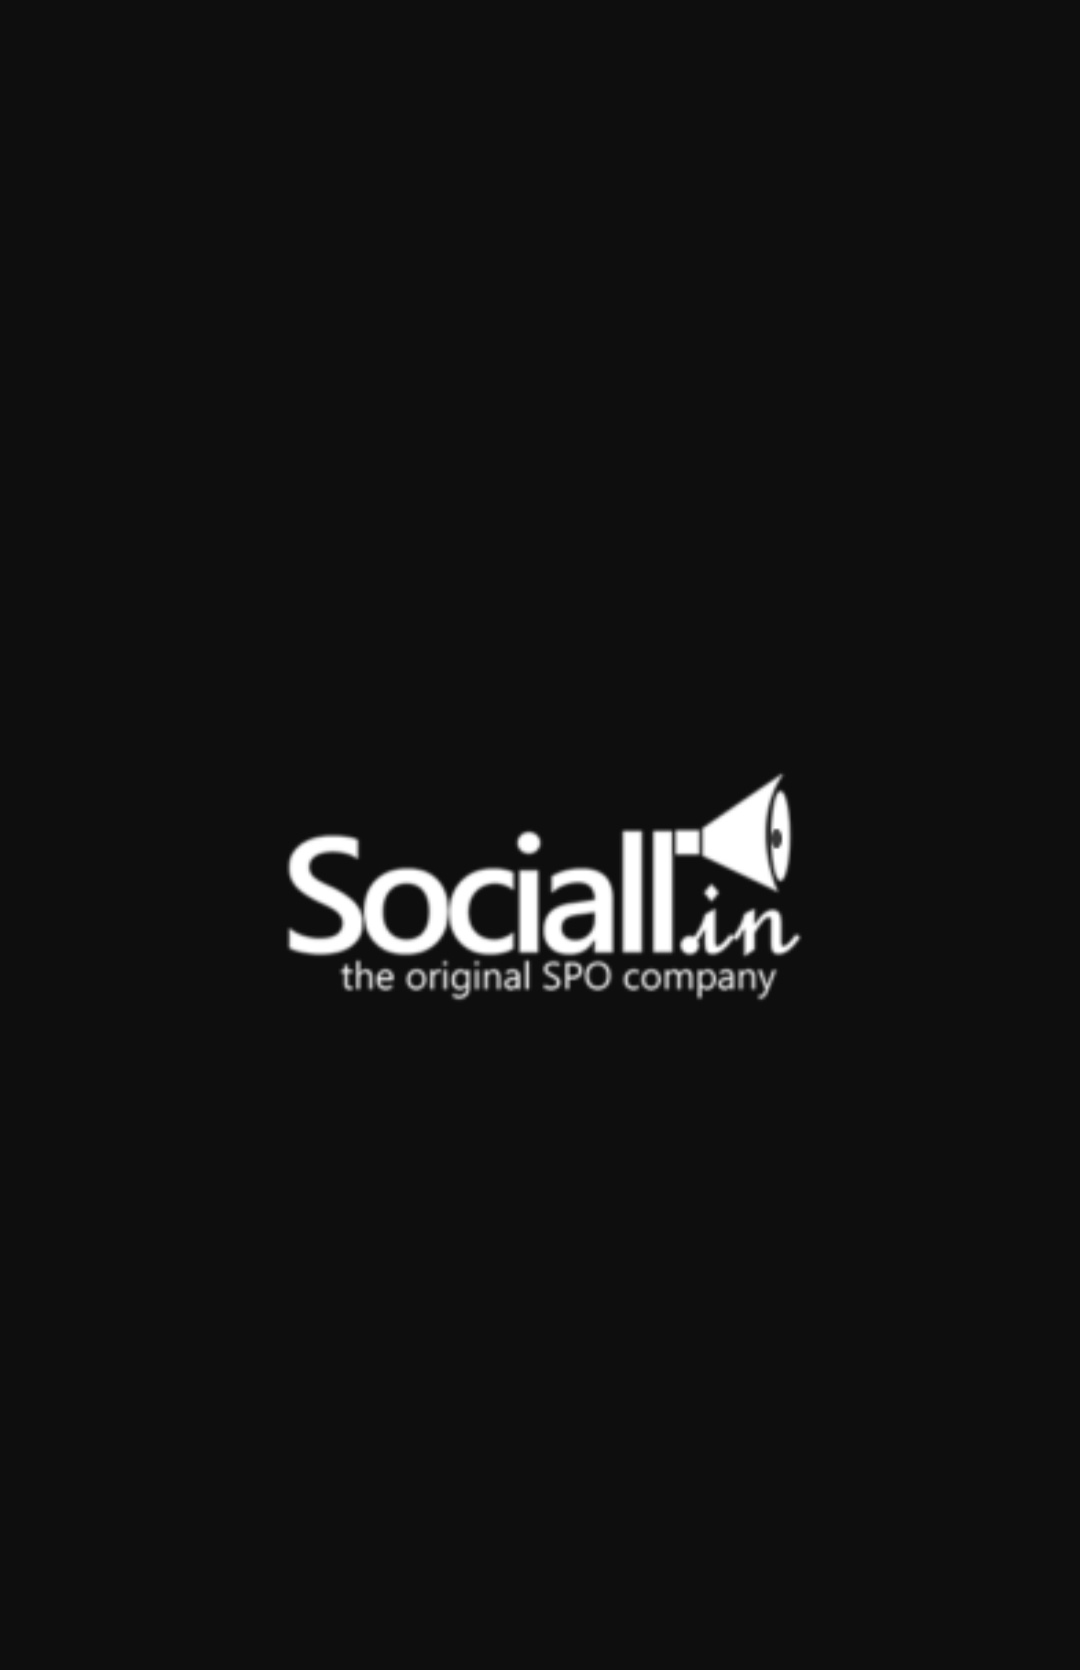 graphic-designer-chennai-Sociall.in-1years-3years-full-time